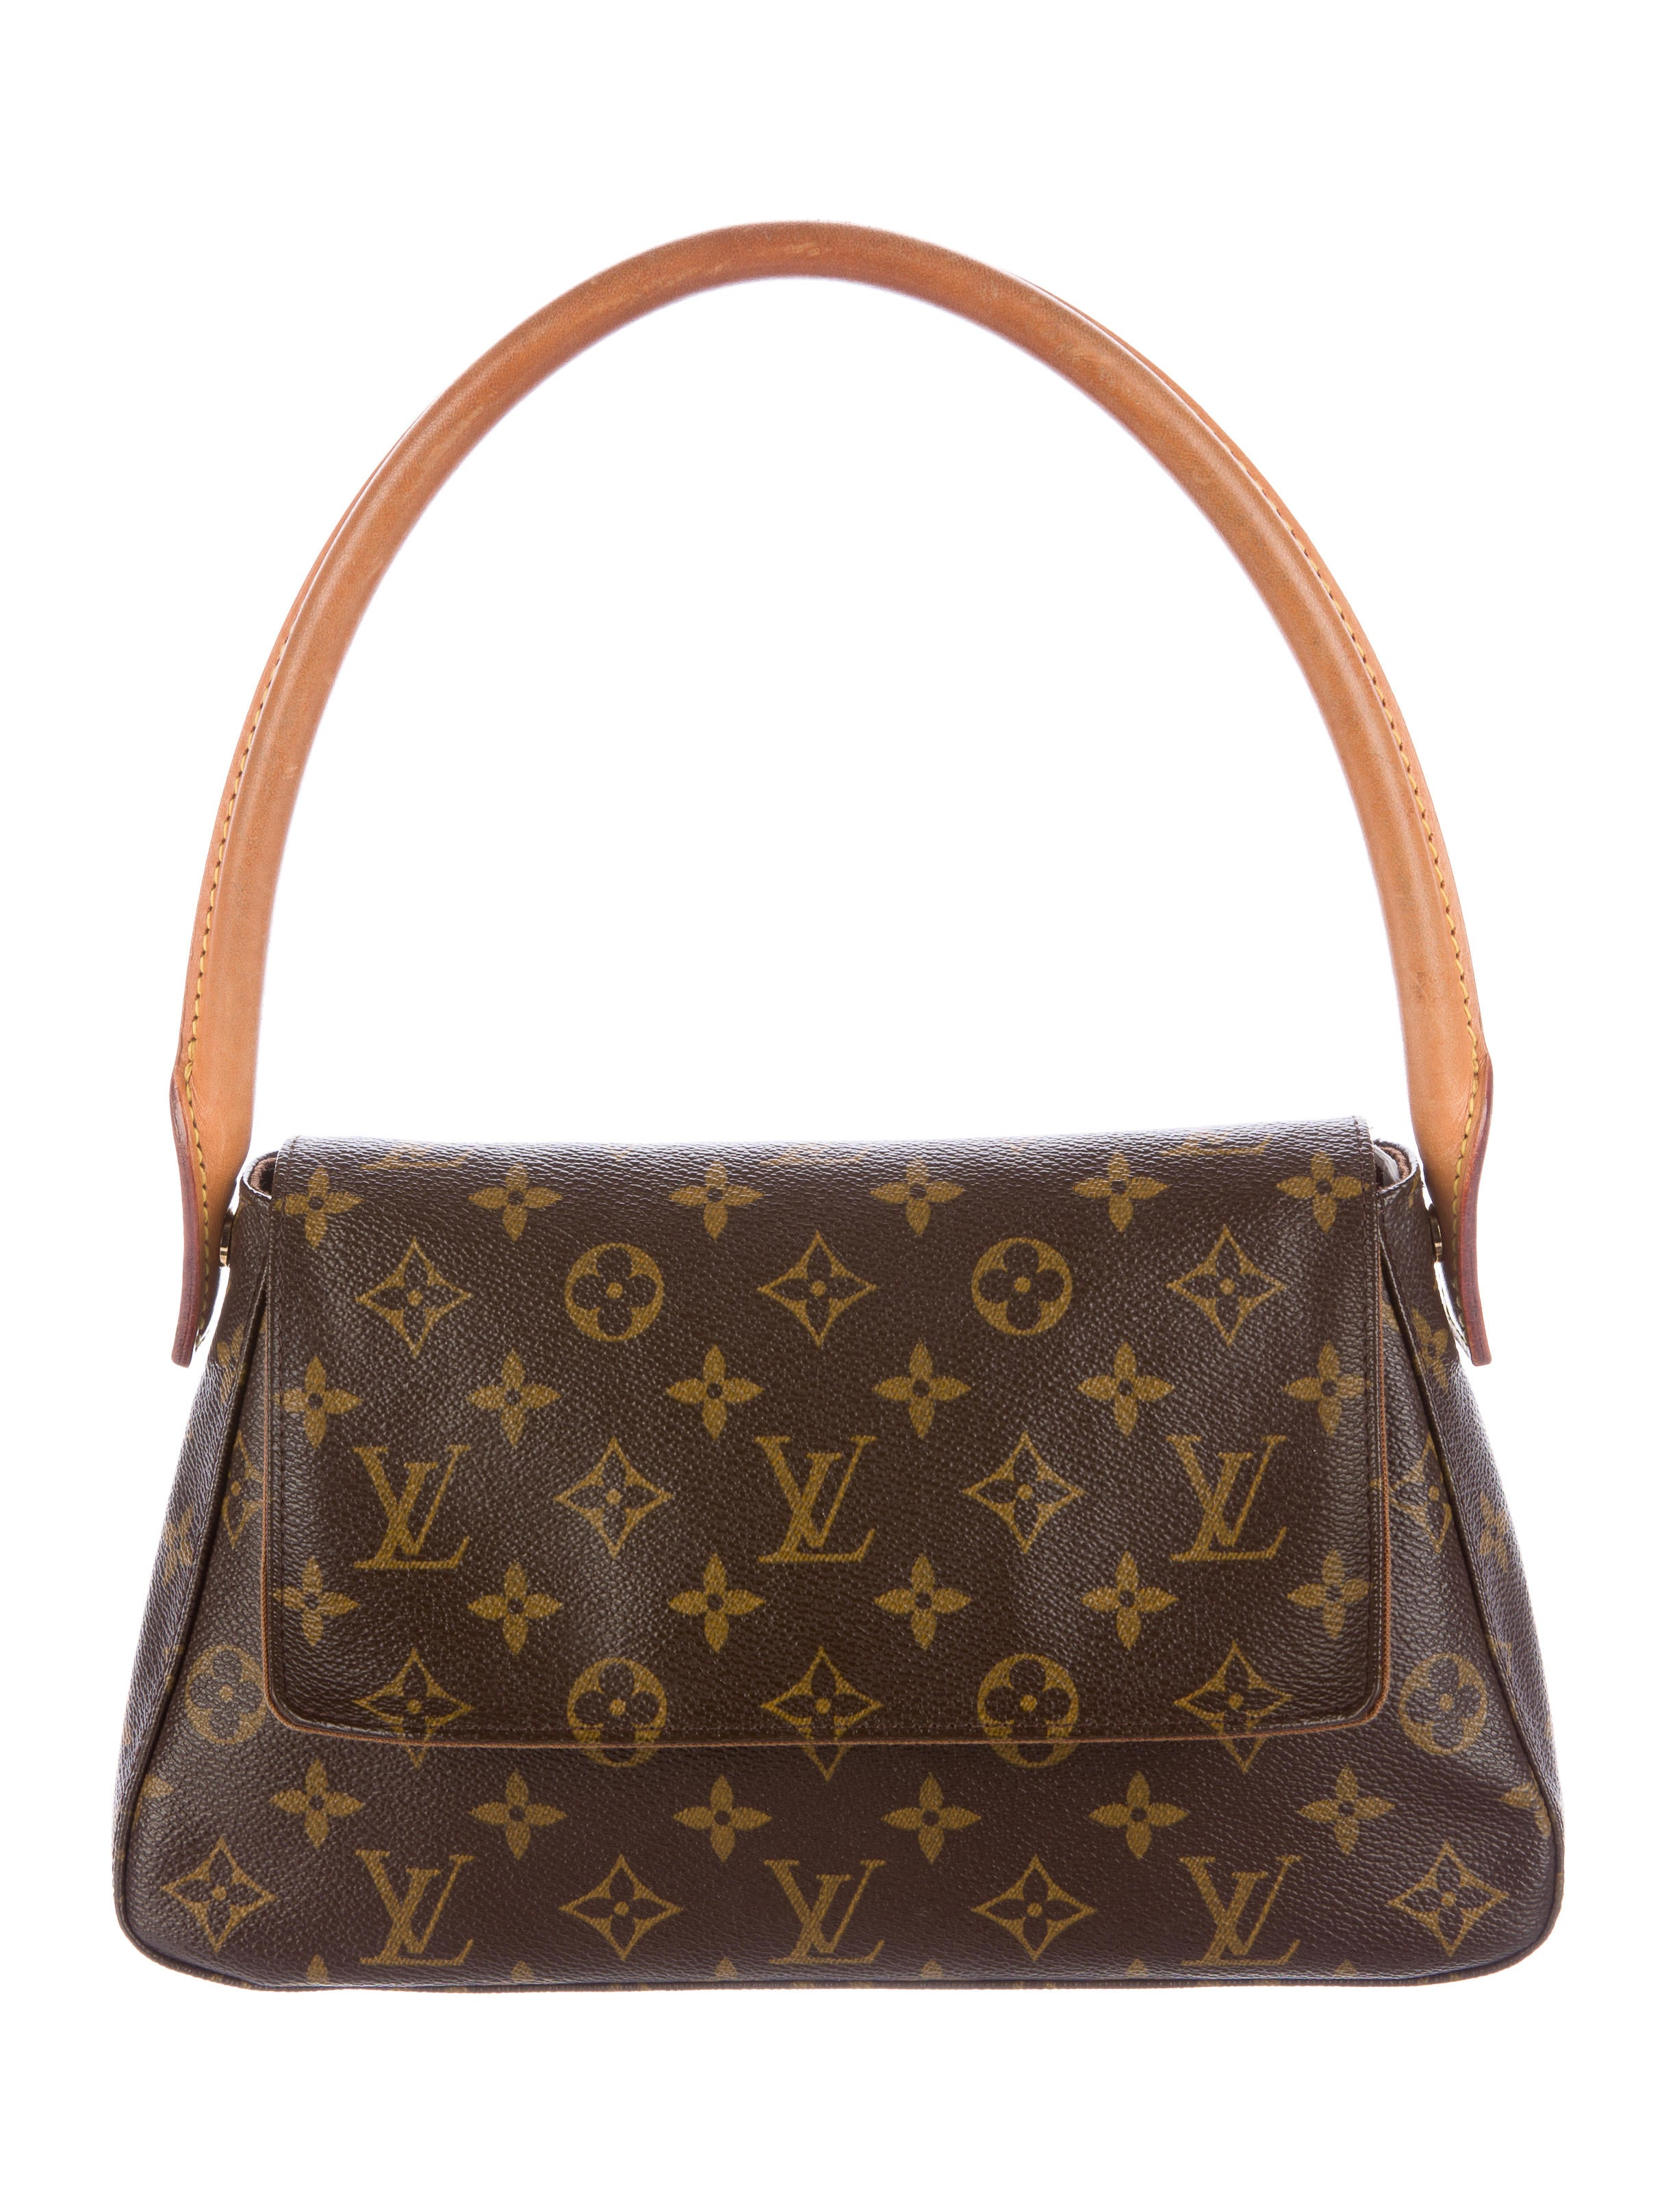 5fa5dcb2f9e Louis Vuitton Small Monogram Bag